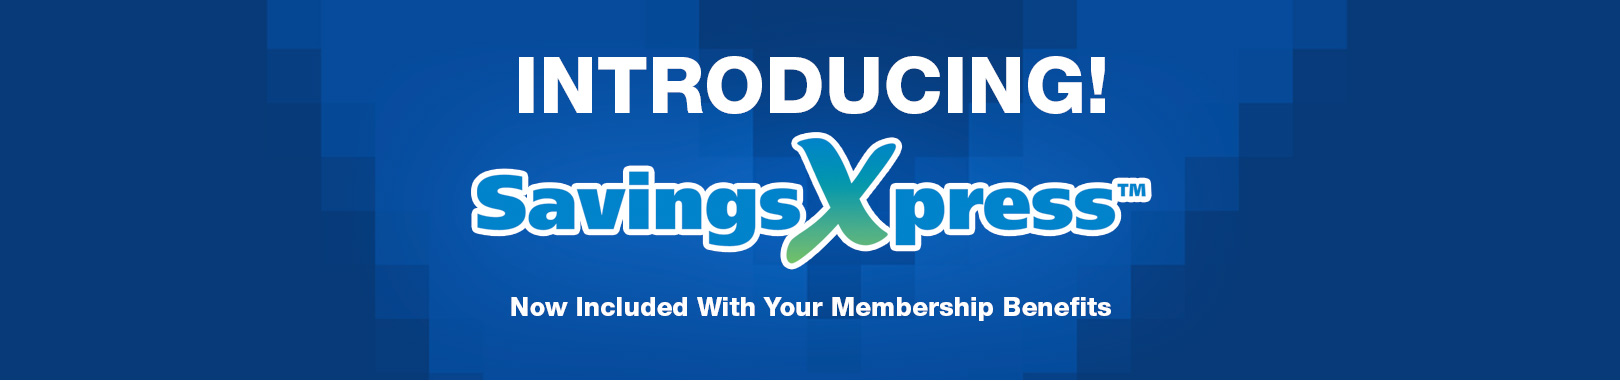 INTRODUCING! SavingsXpress Now Included With Your Membership Benefits